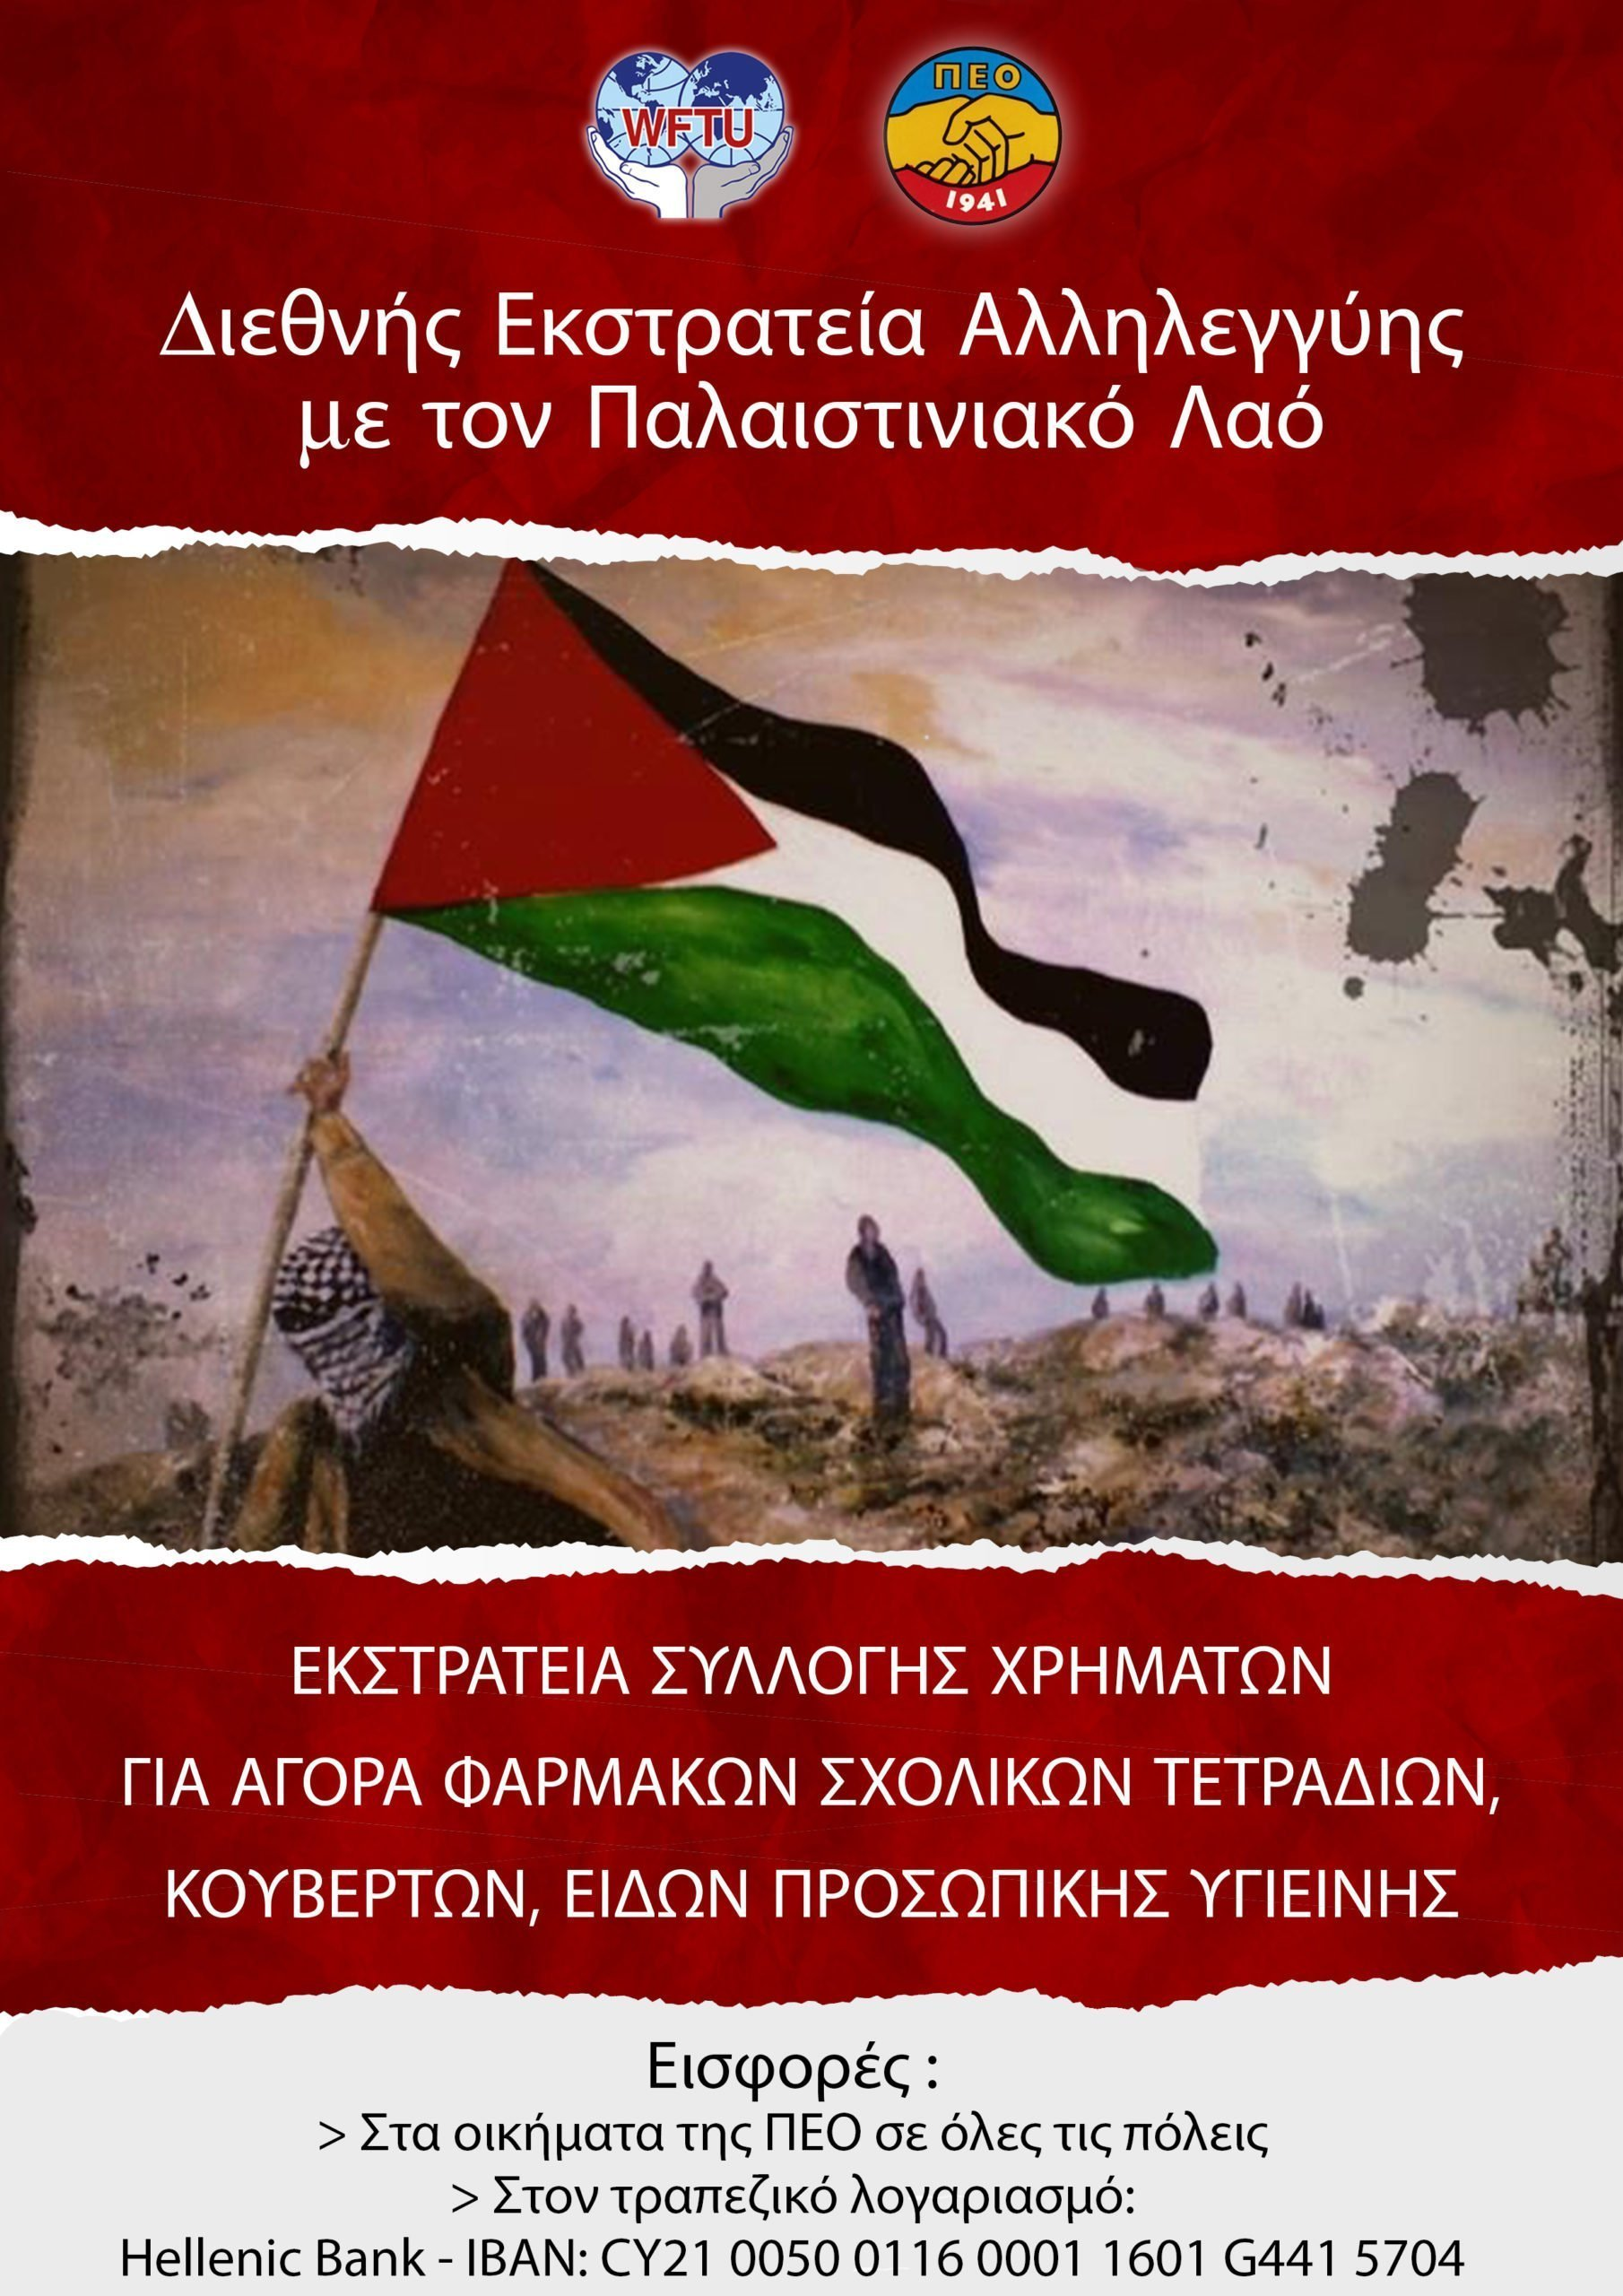 International Solidarity Campaign With Palestine Peo Scaled